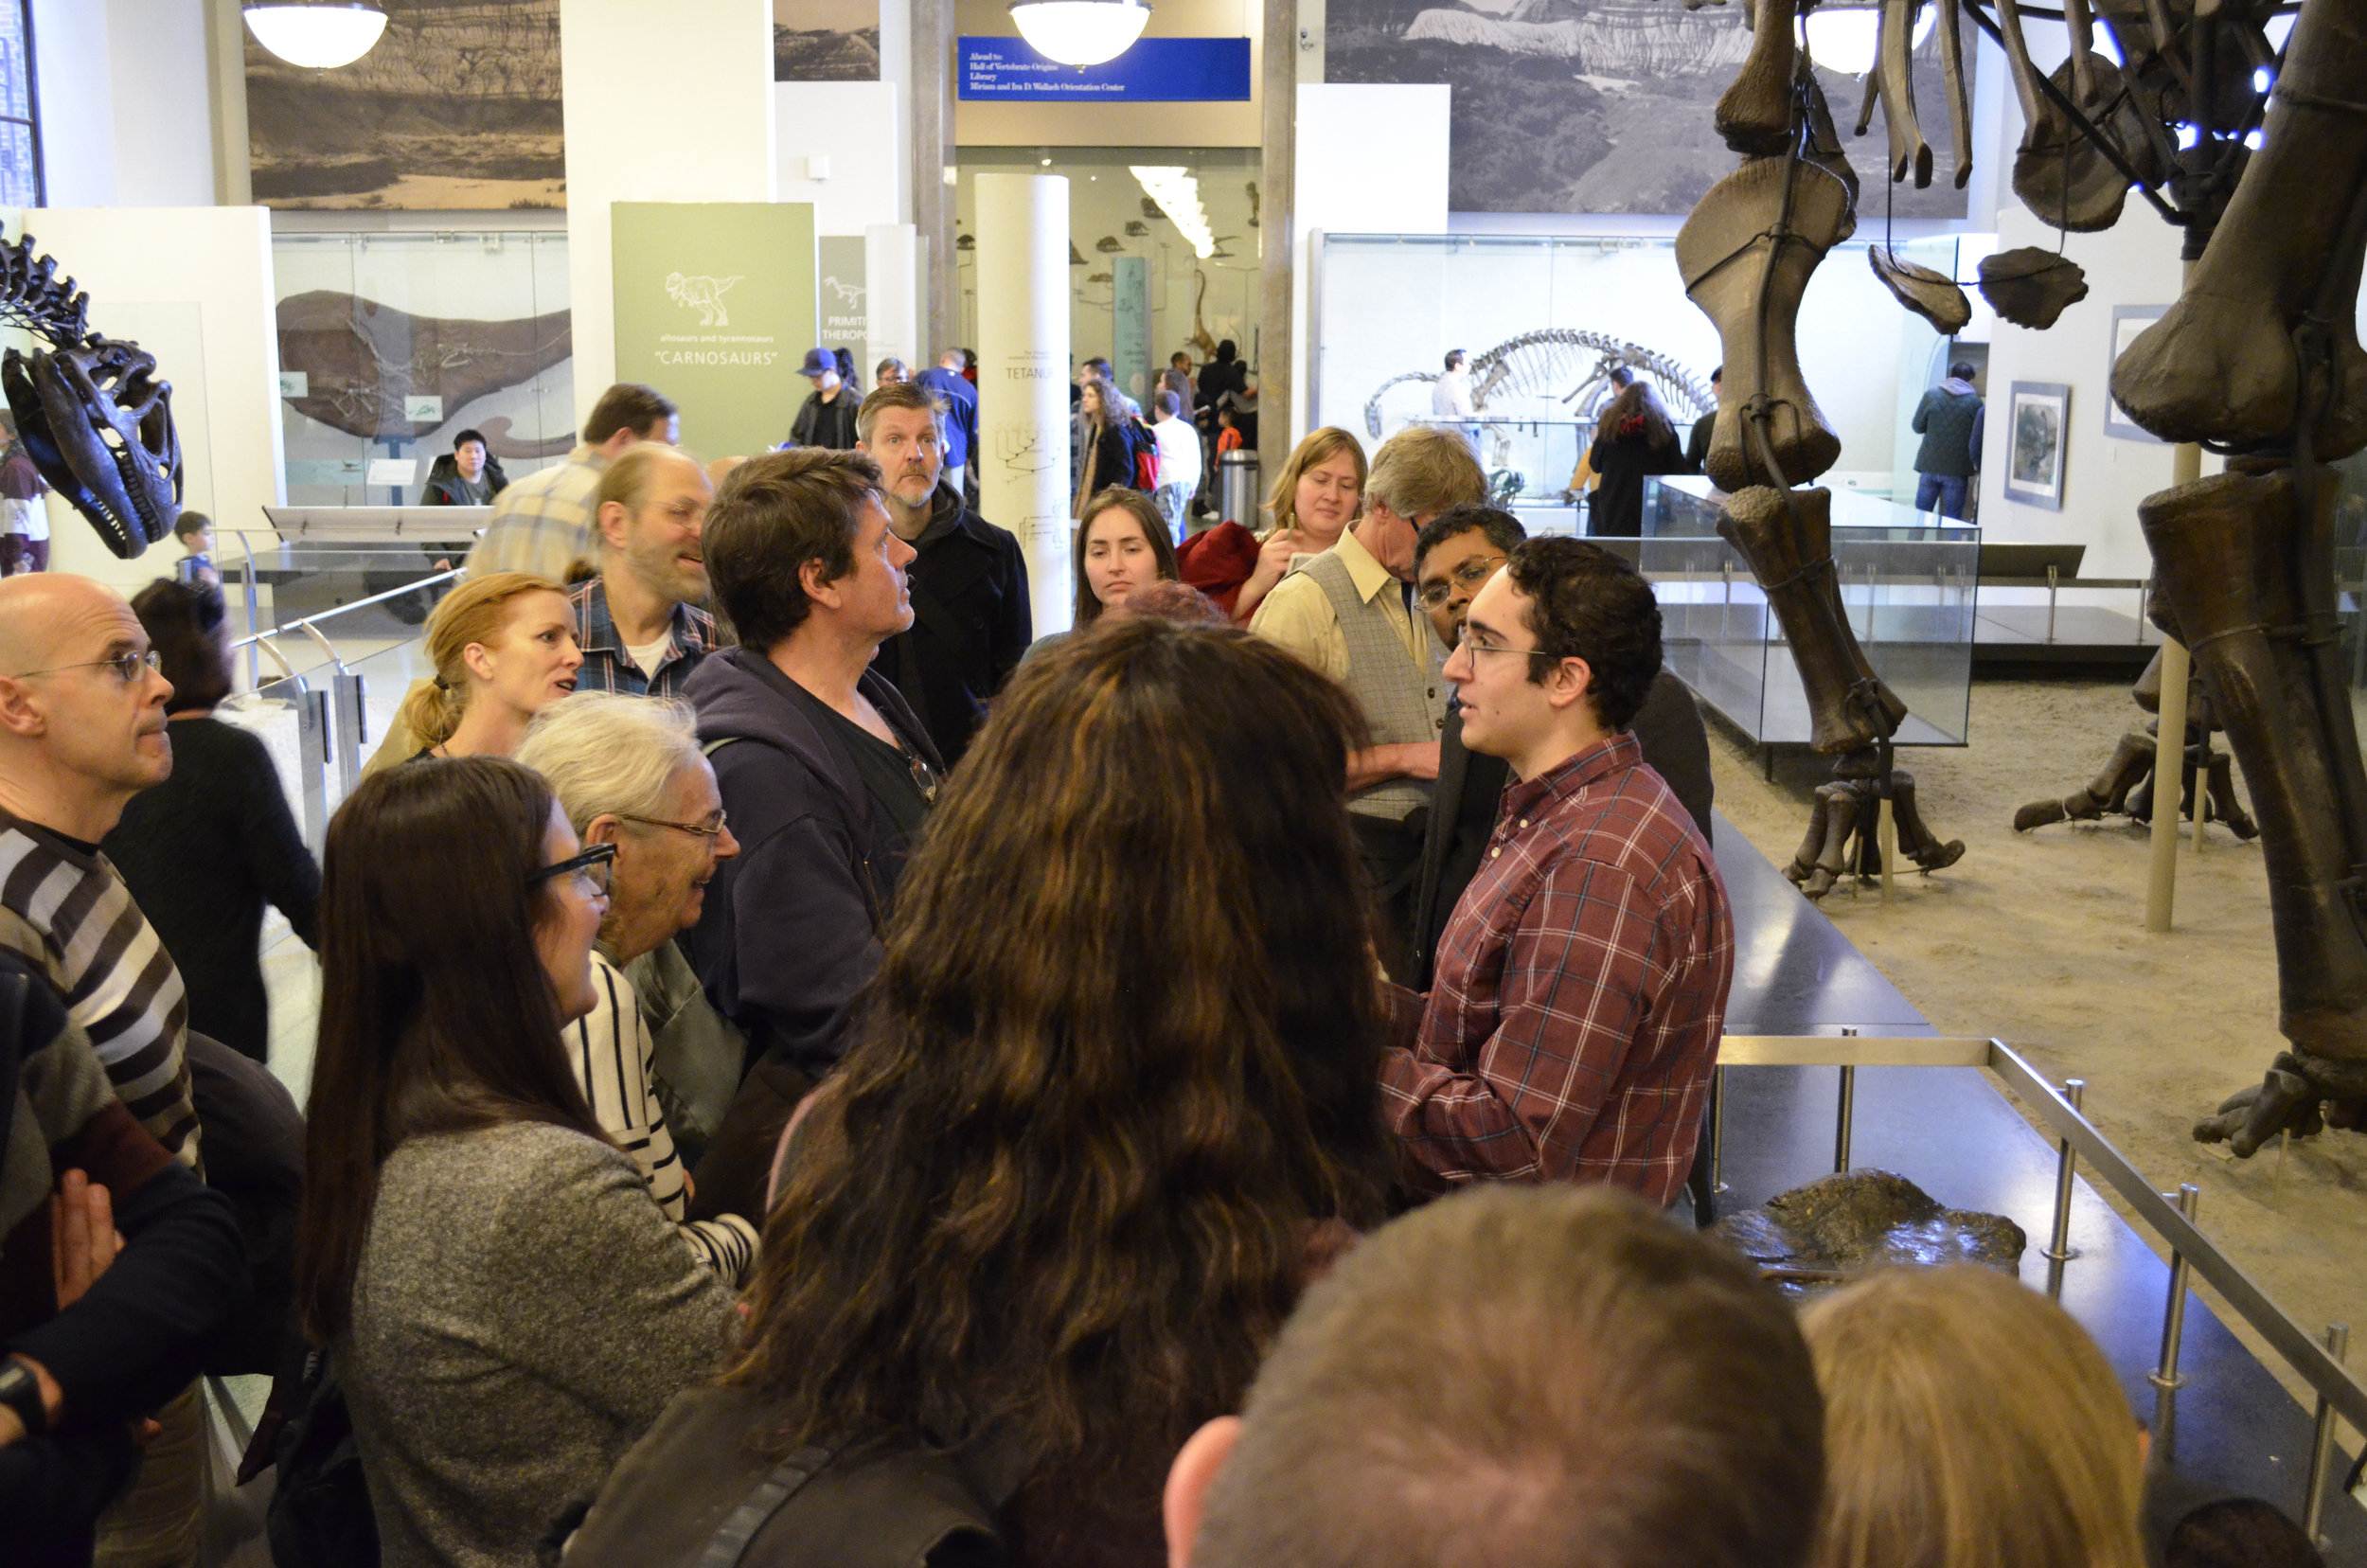 Jan 26 - Tour of Dinosaur Hall with James Napoli at American Museum of Natural History